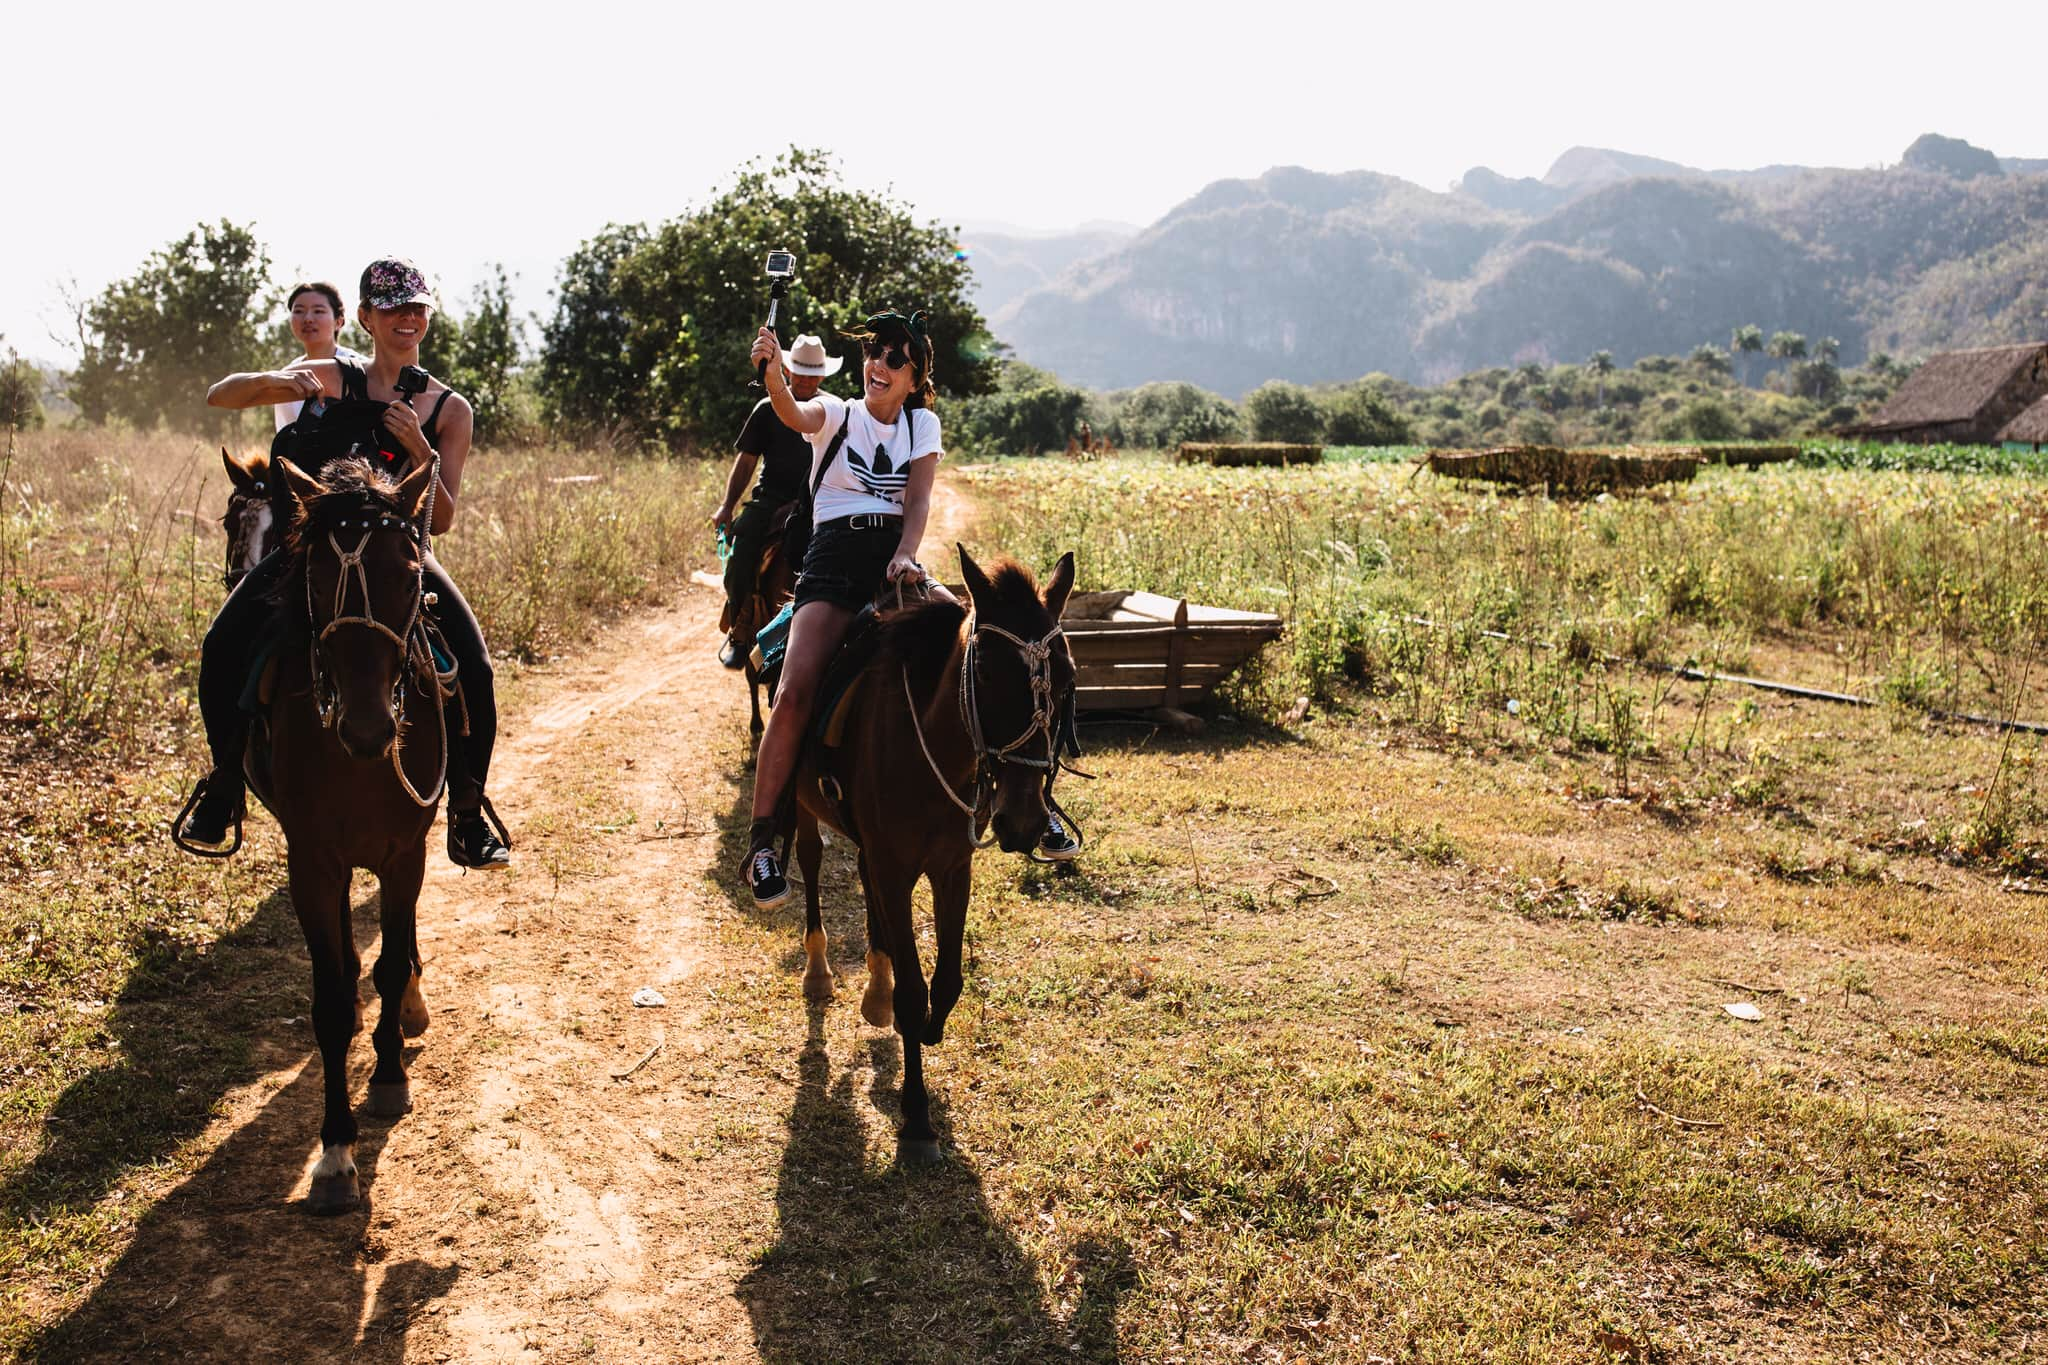 Horseback tour of the cigar farm in Vinales, Cuba. Wedding and travel photographer Brent Calis.